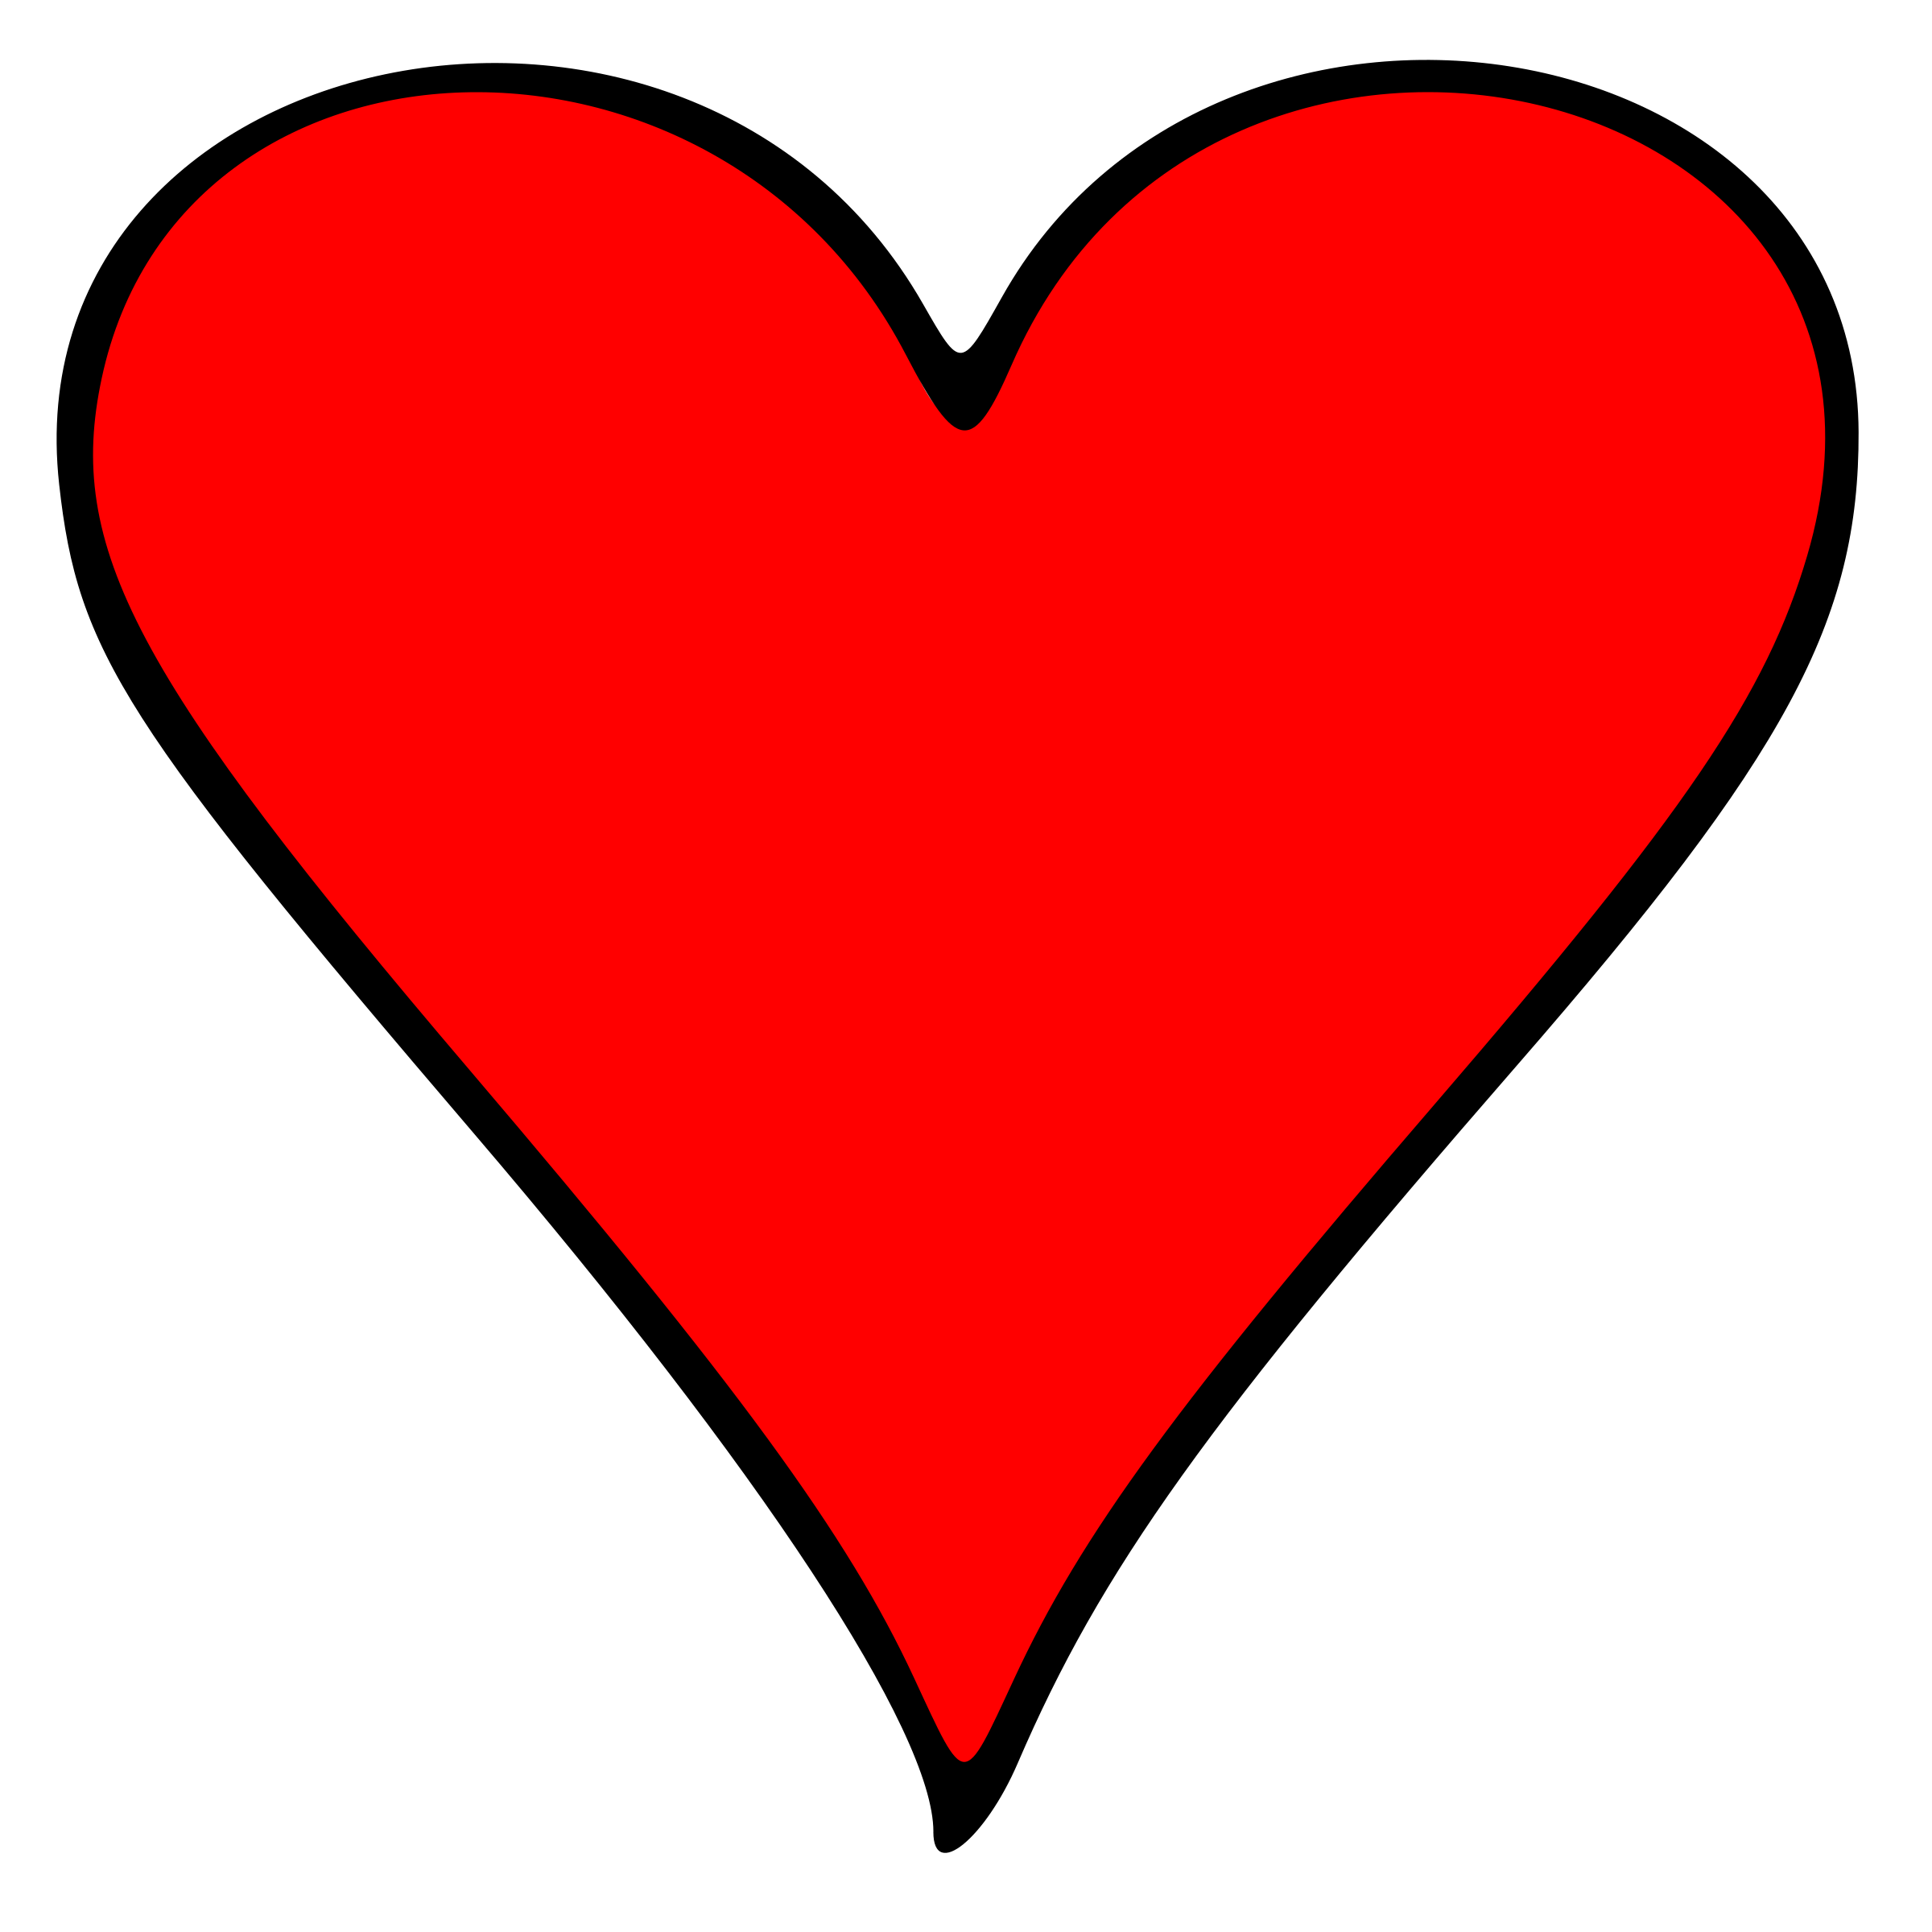 Clipart - Outlined Heart Playing Card Symbol